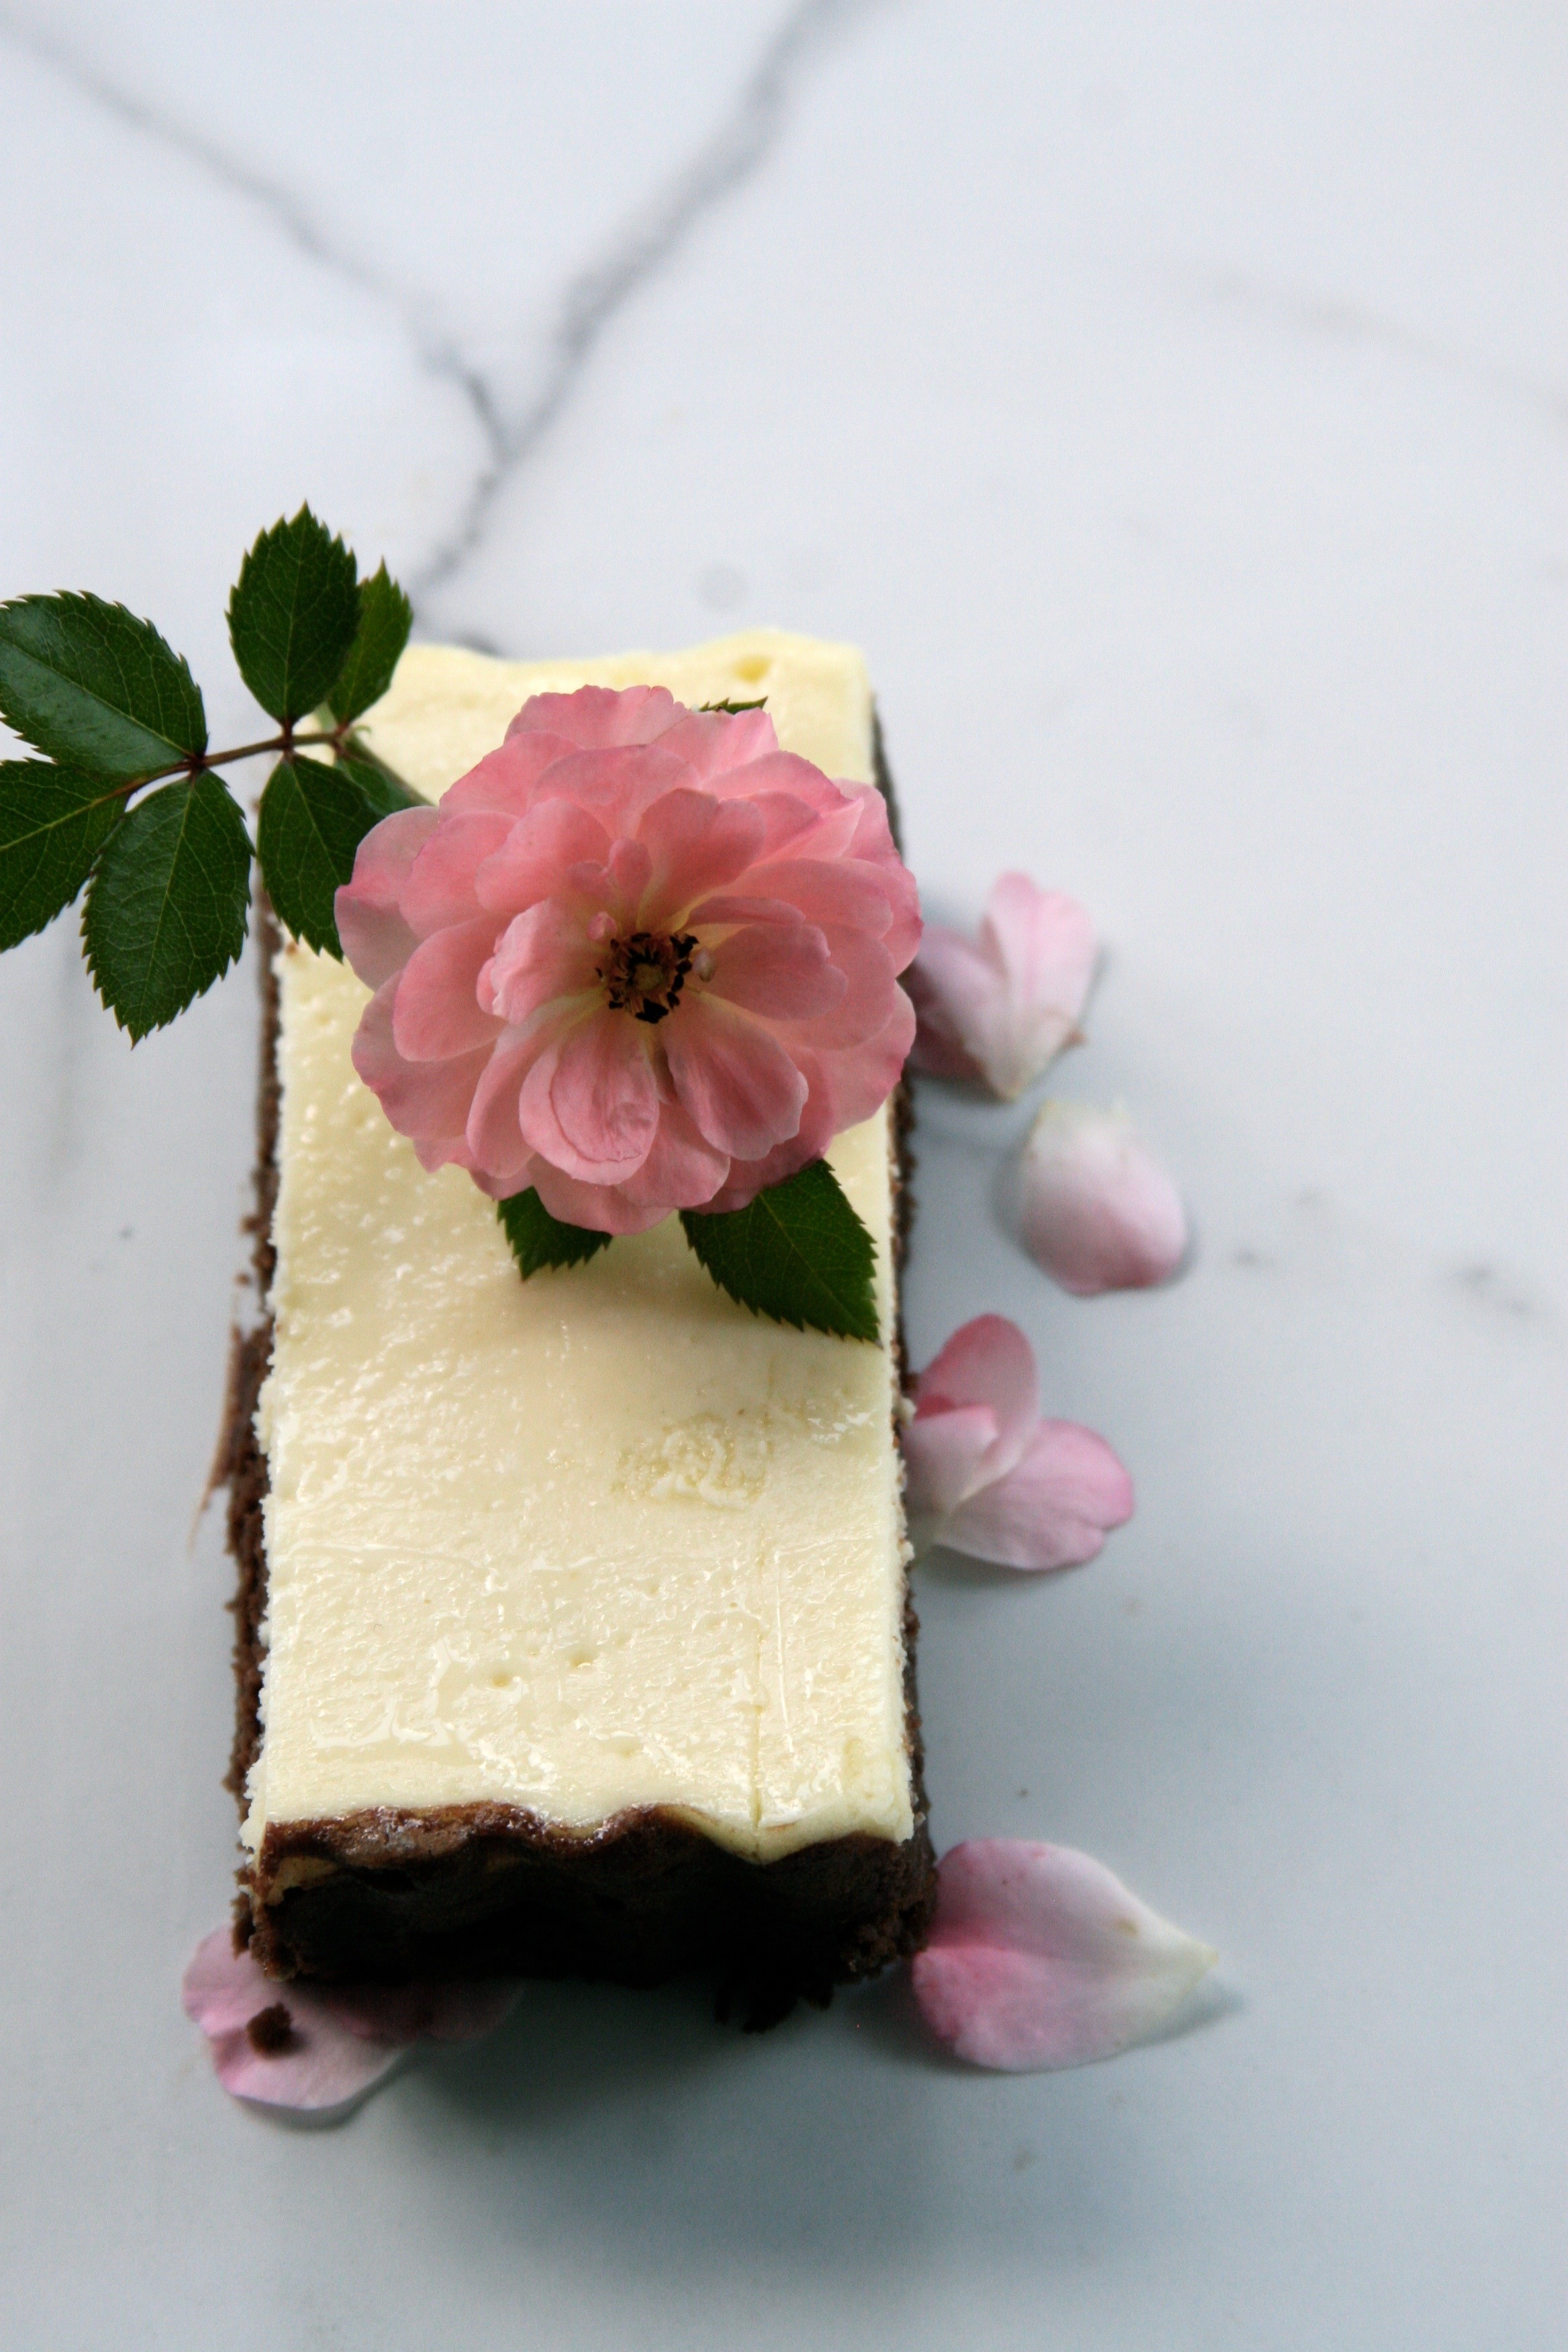 Rose scented Brownie Cheesecake made in an oblong tart pan with removable bottom serves 8.